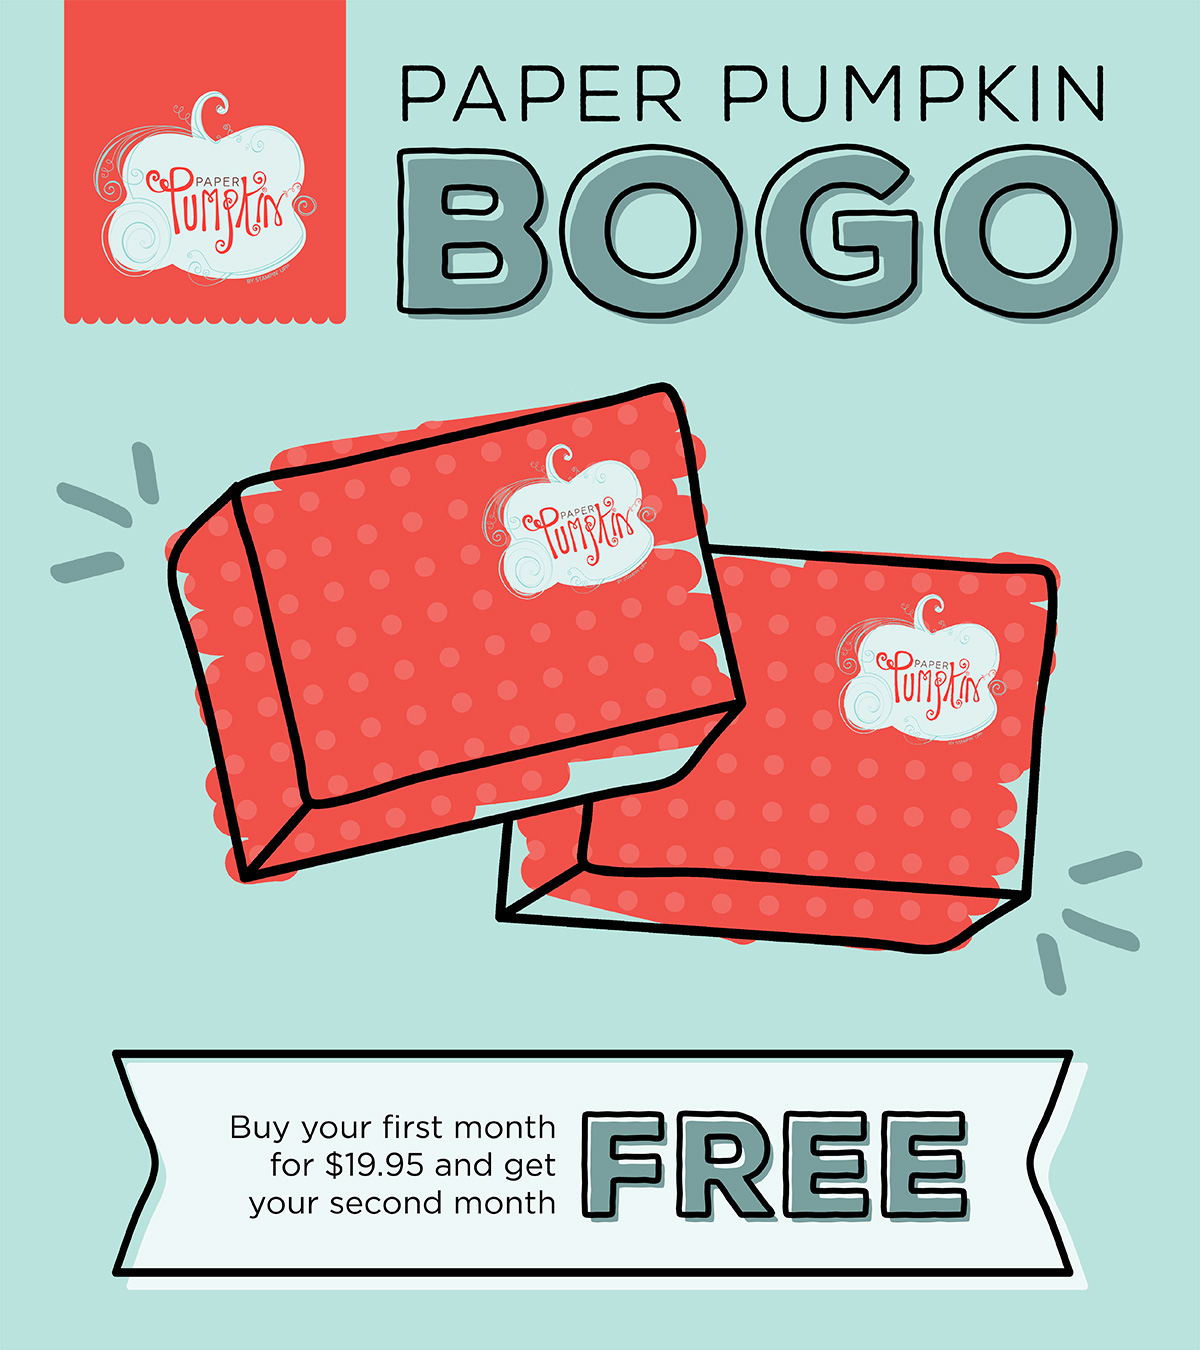 https://i2.wp.com/su-media.s3.amazonaws.com/media/PaperPumpkin/2016_PP_BOGO/PP_BOGO_Facebook_US.jpg